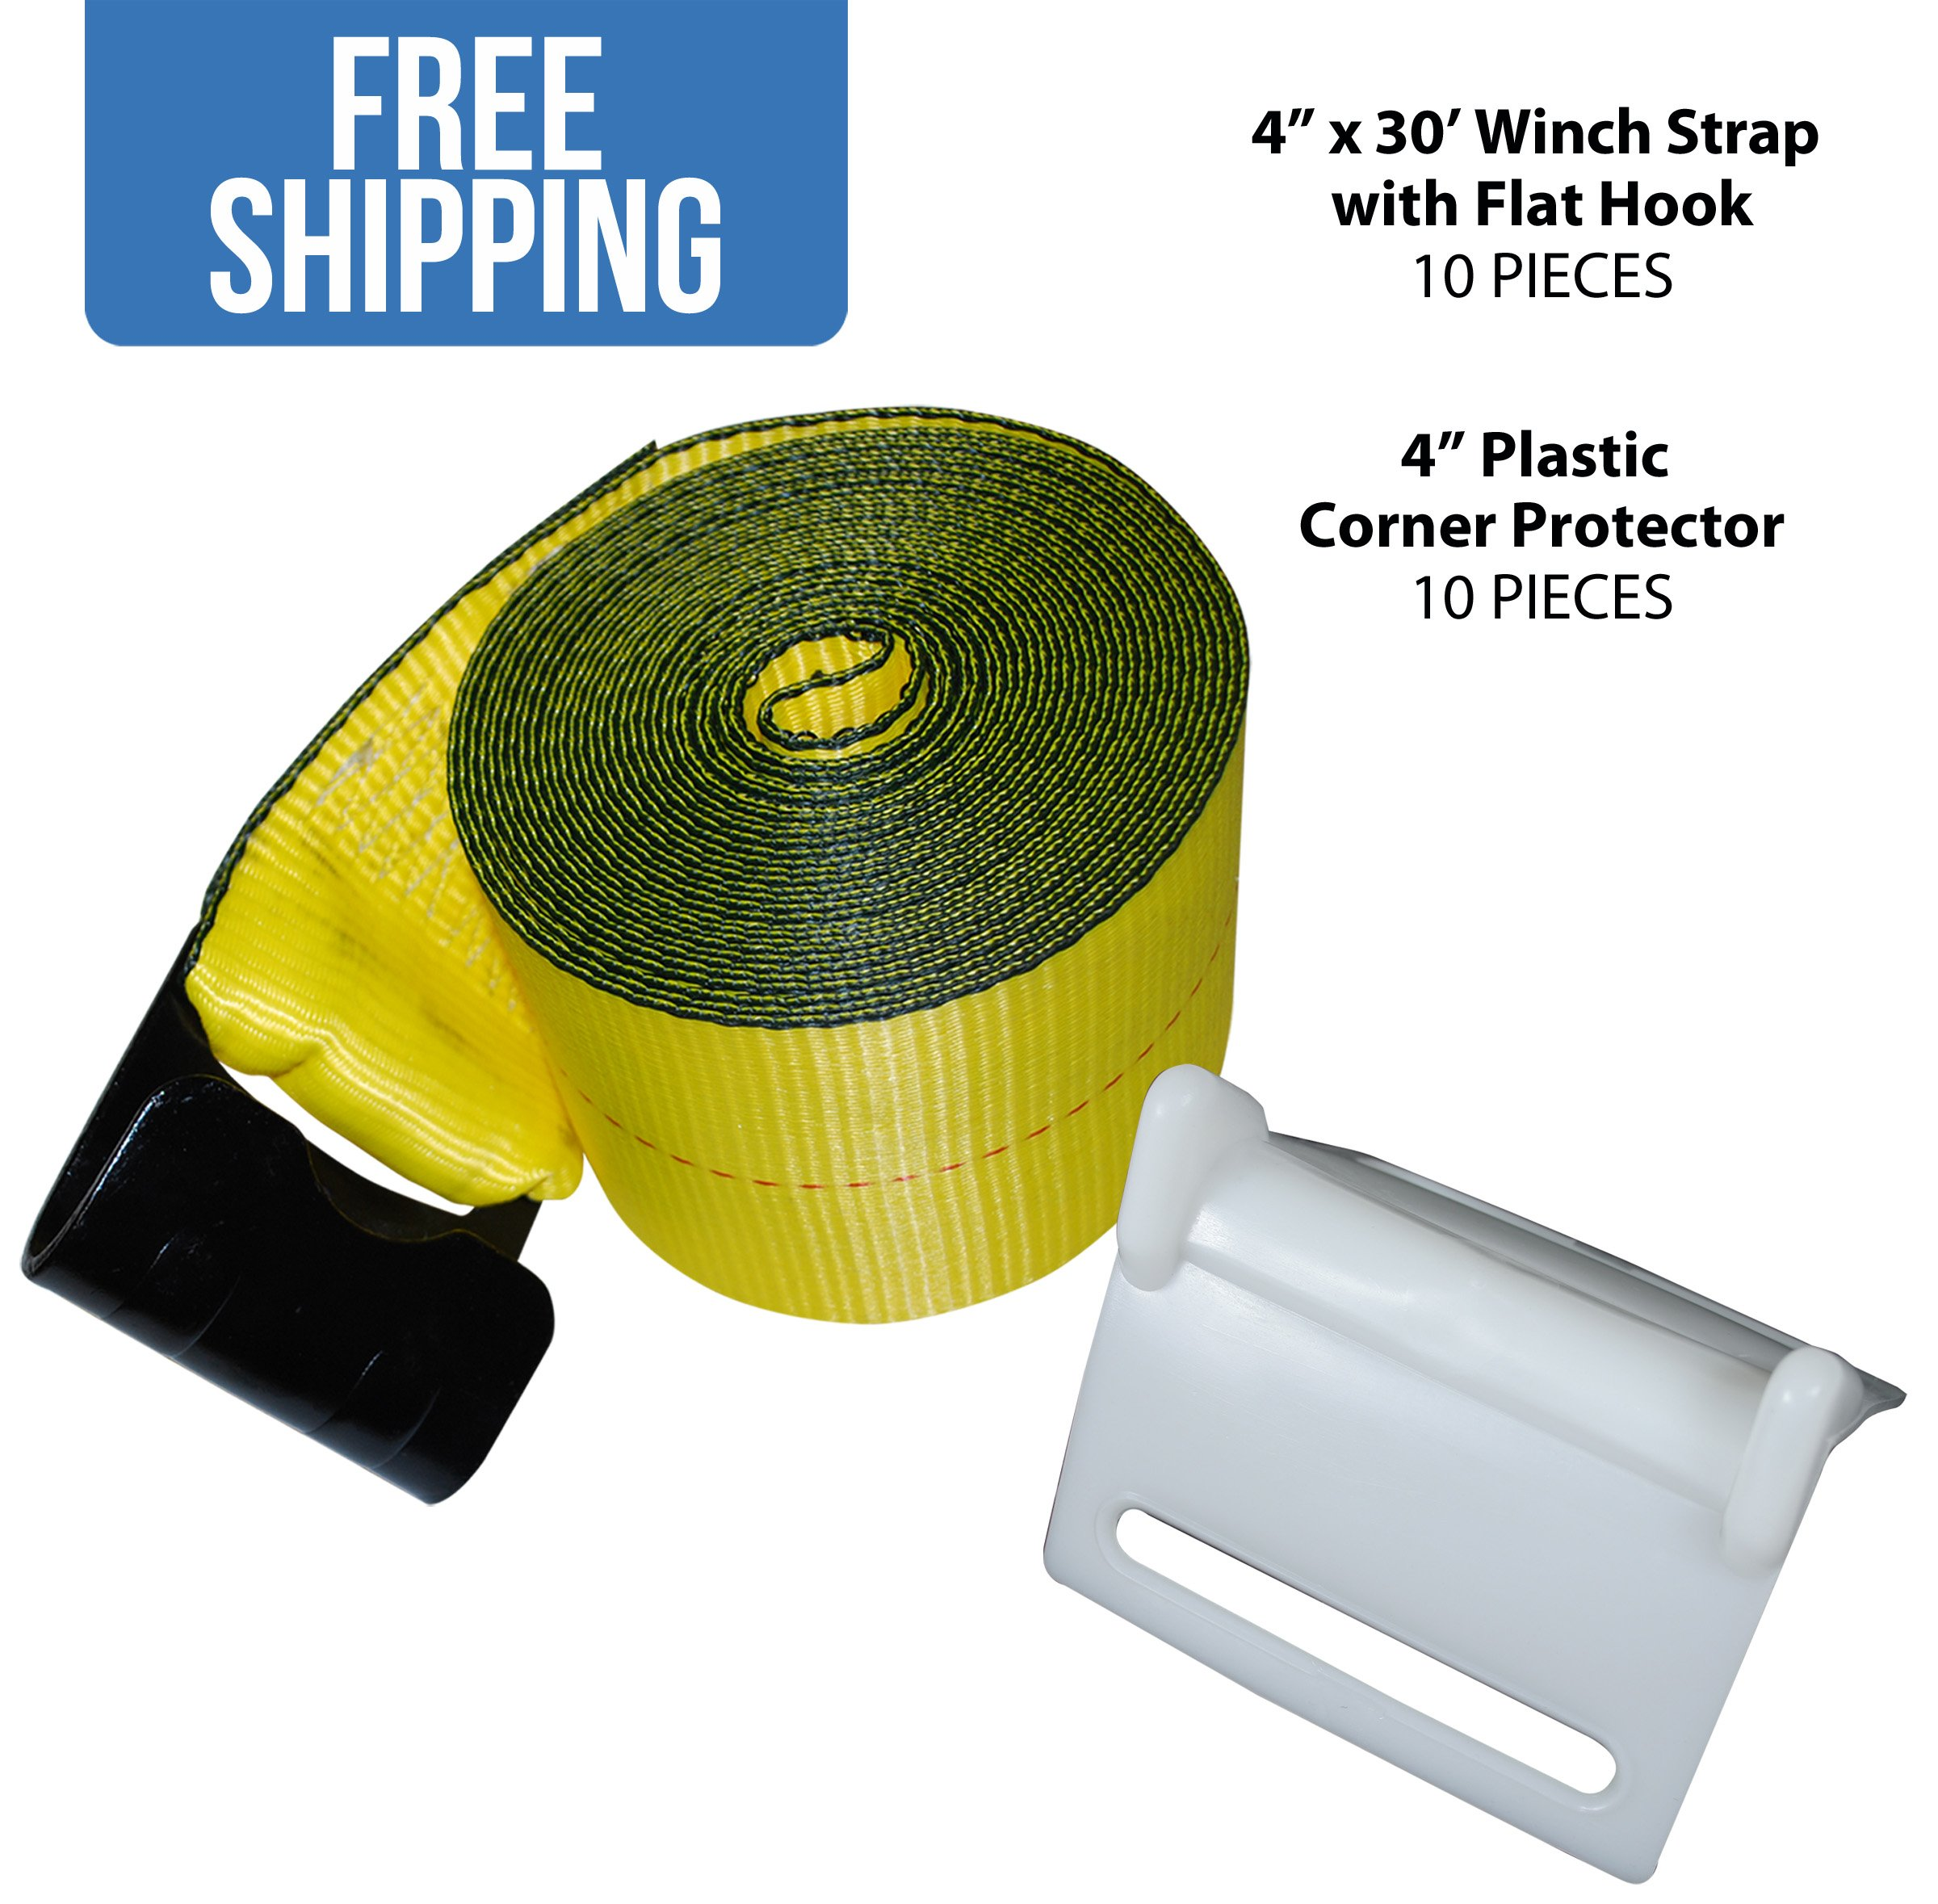 """4"""" x 30' Winch Strap w/ Flat Hook — 10 PACK & 10 White Corner Protectors — Shippers Supplies"""